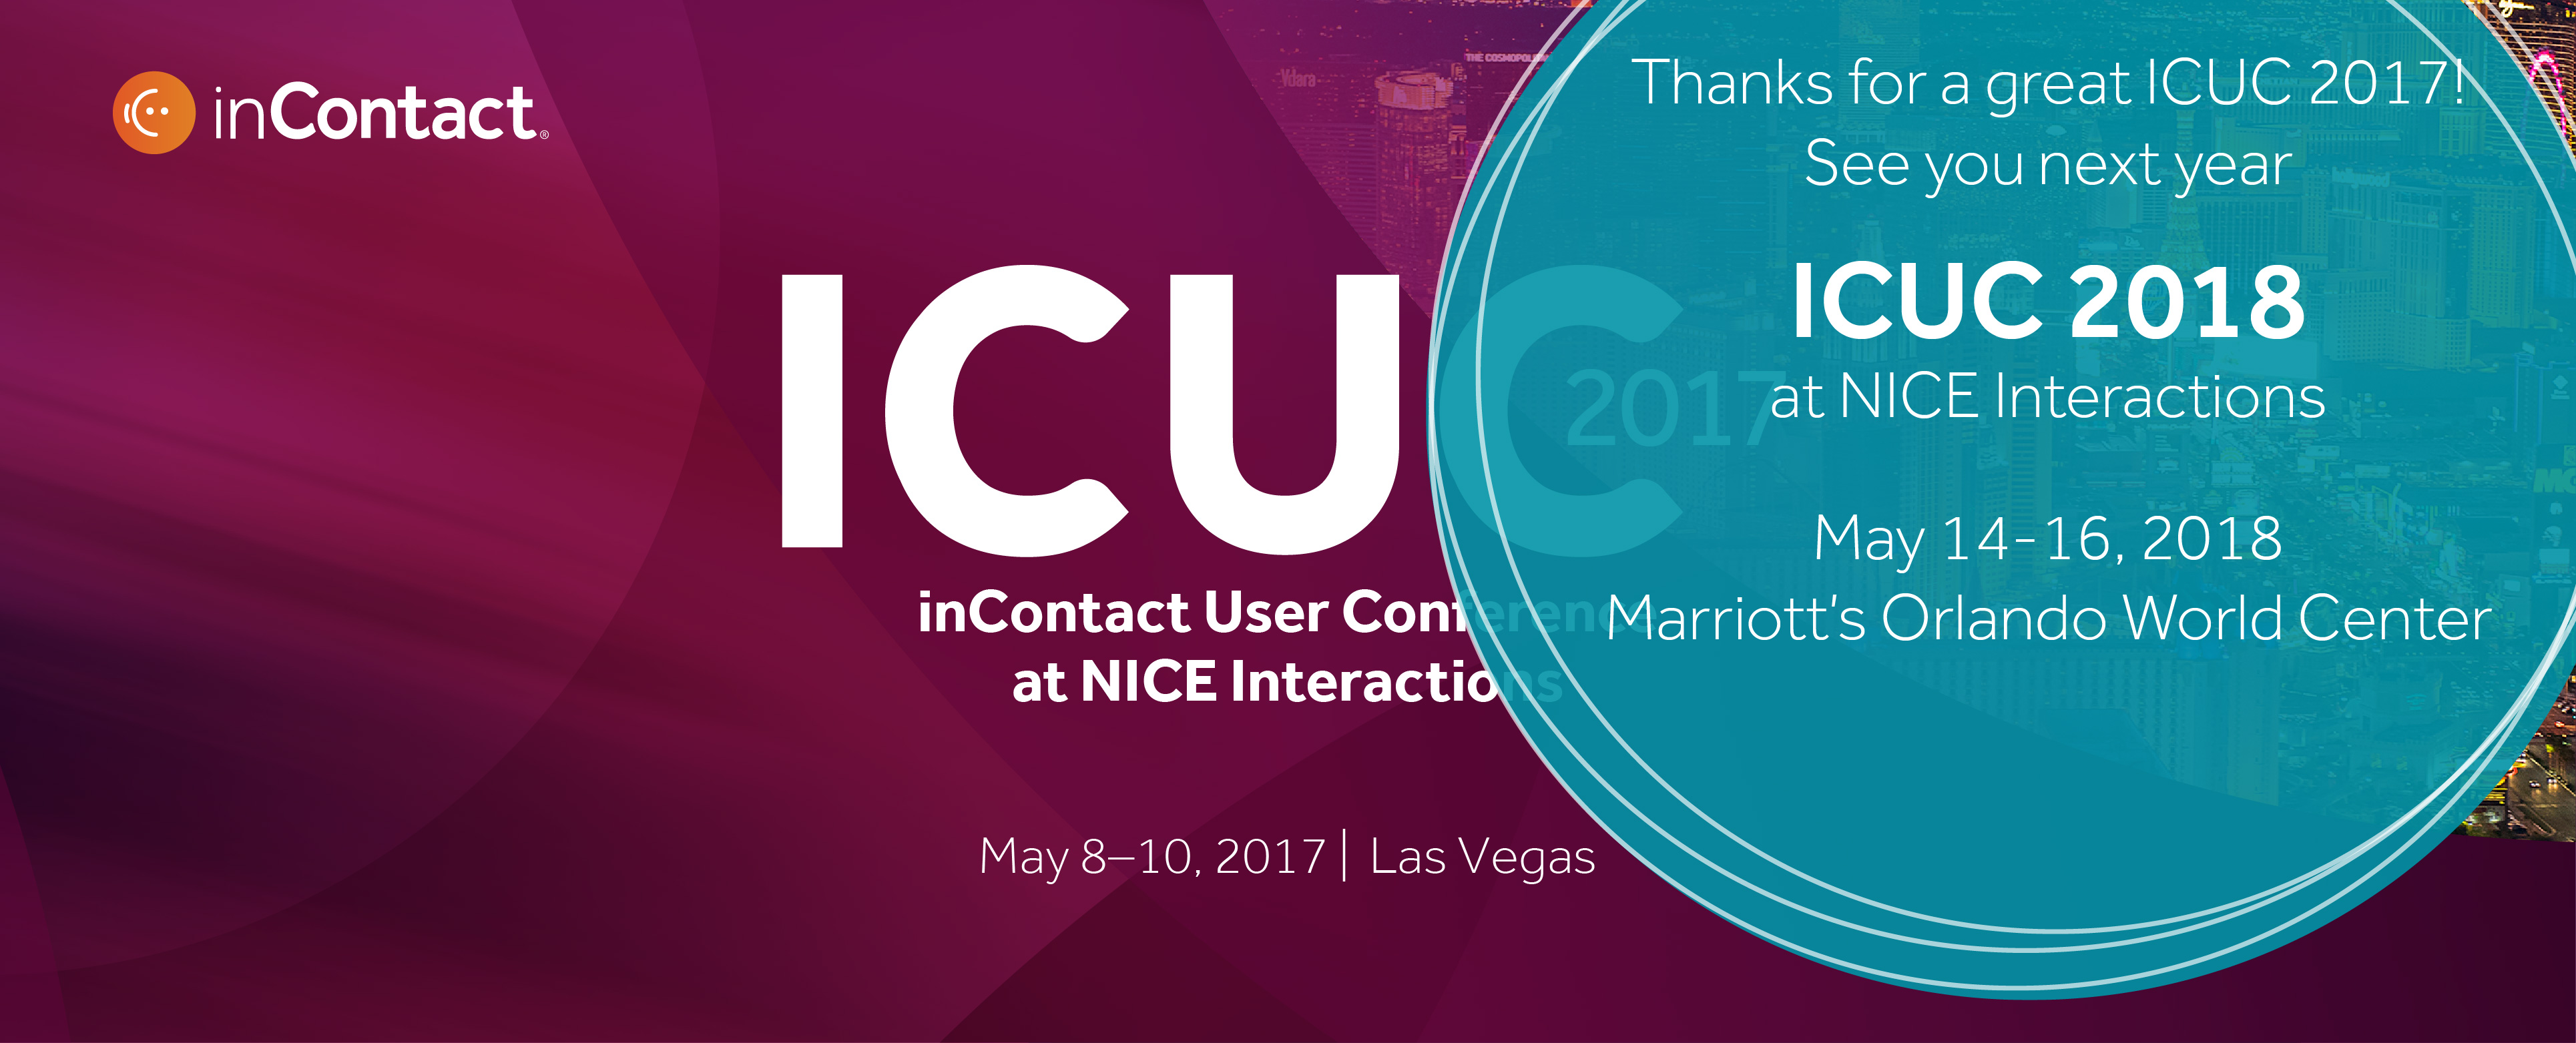 ICUC 2017 at NICE Interactions